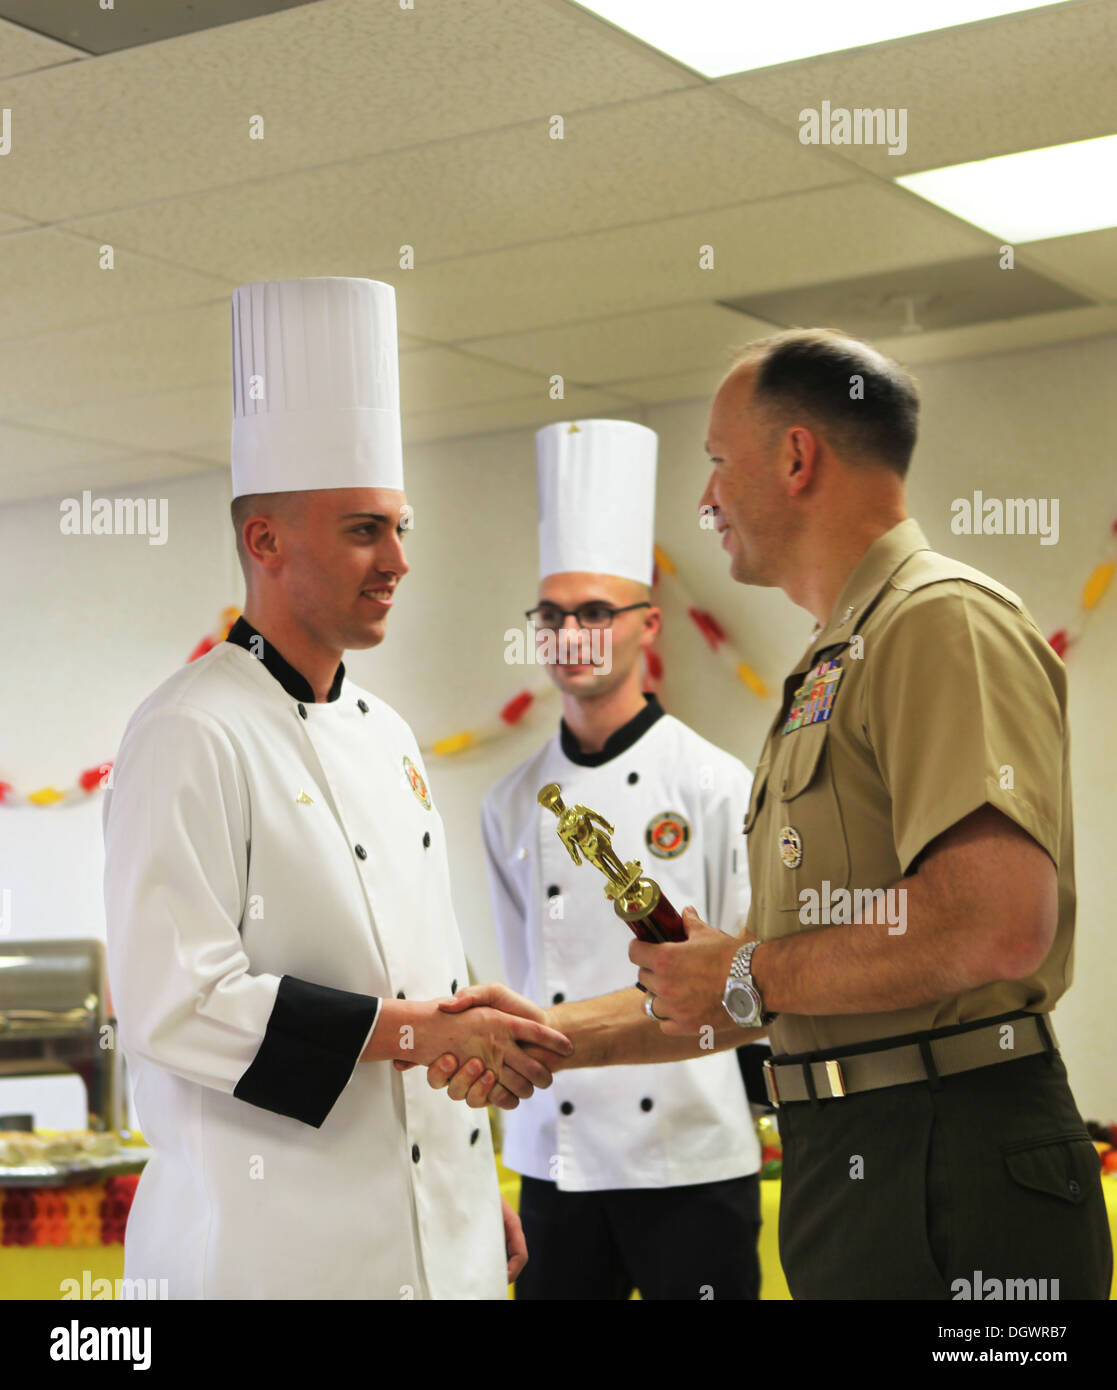 Lance Cpl. Zachery C. Schram receives the 1st place award from Col. Chris Pappas III, the commanding officer of Marine Corps Air Station Cherry Point during the Chef of the Year competition Oct. 18. - Stock Image